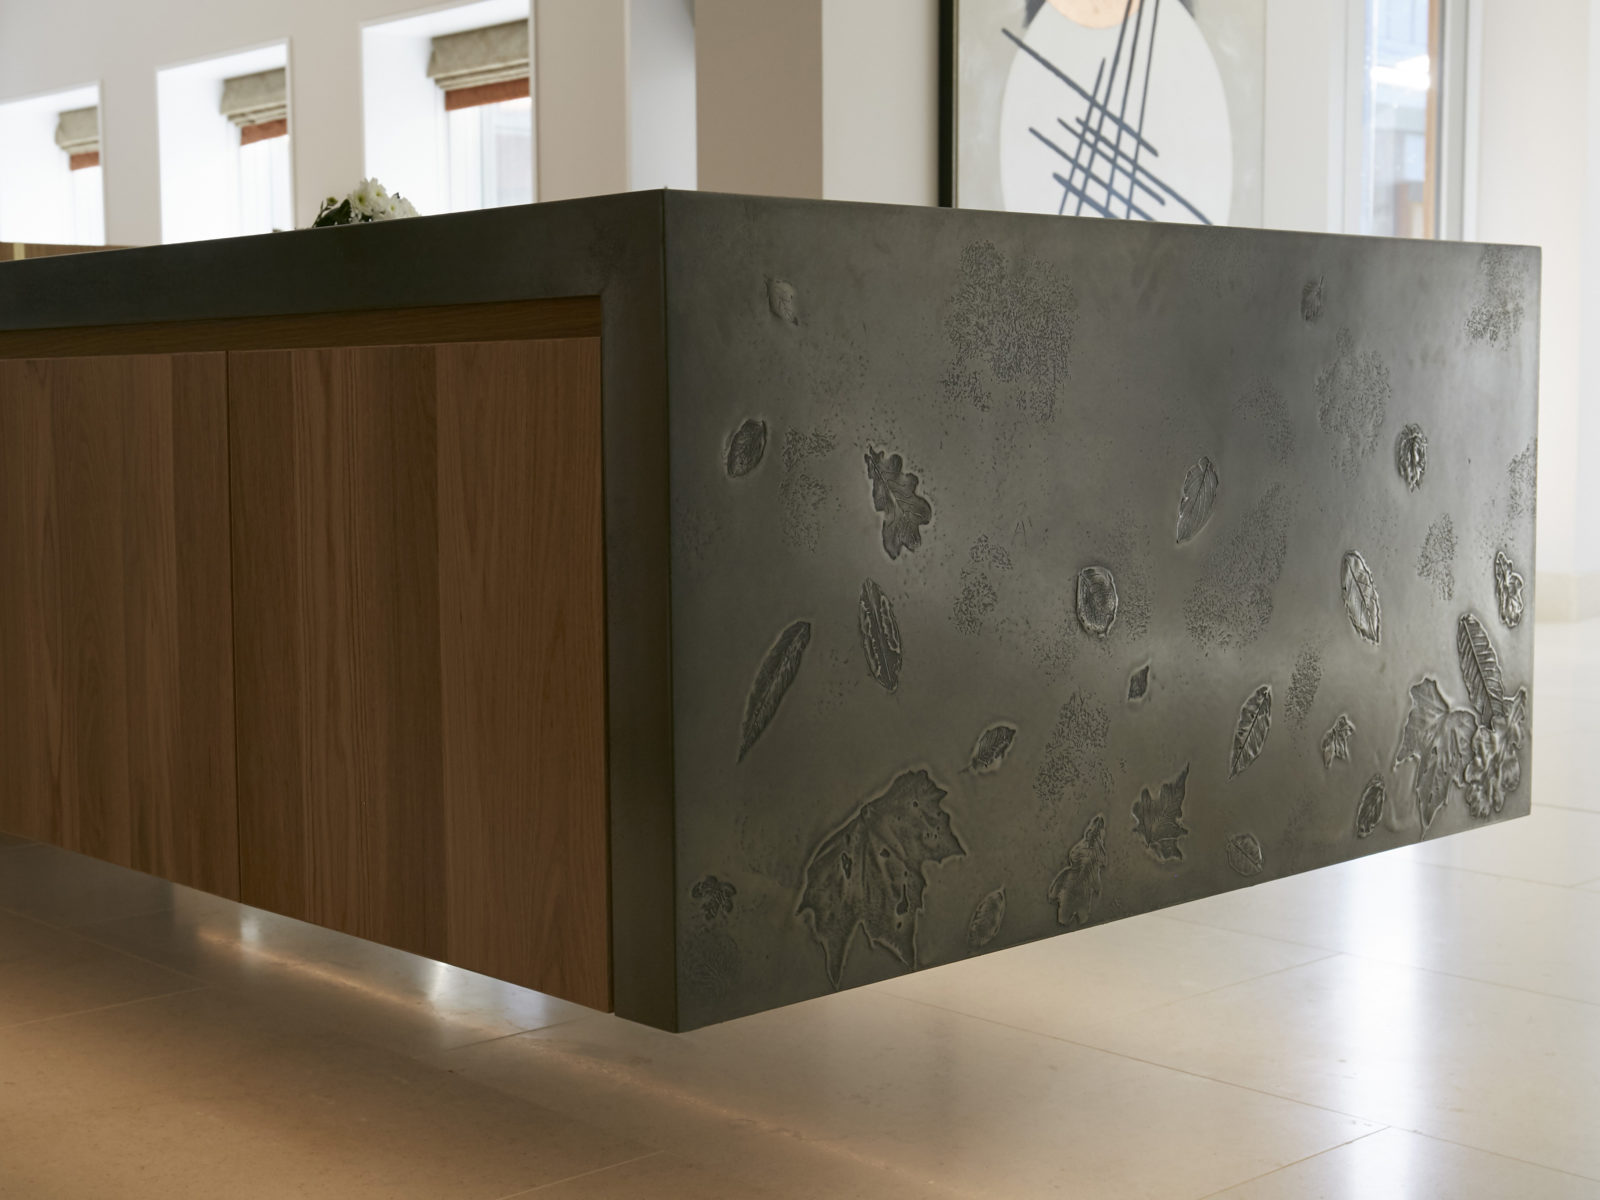 Metallic worktop with leaf pattern